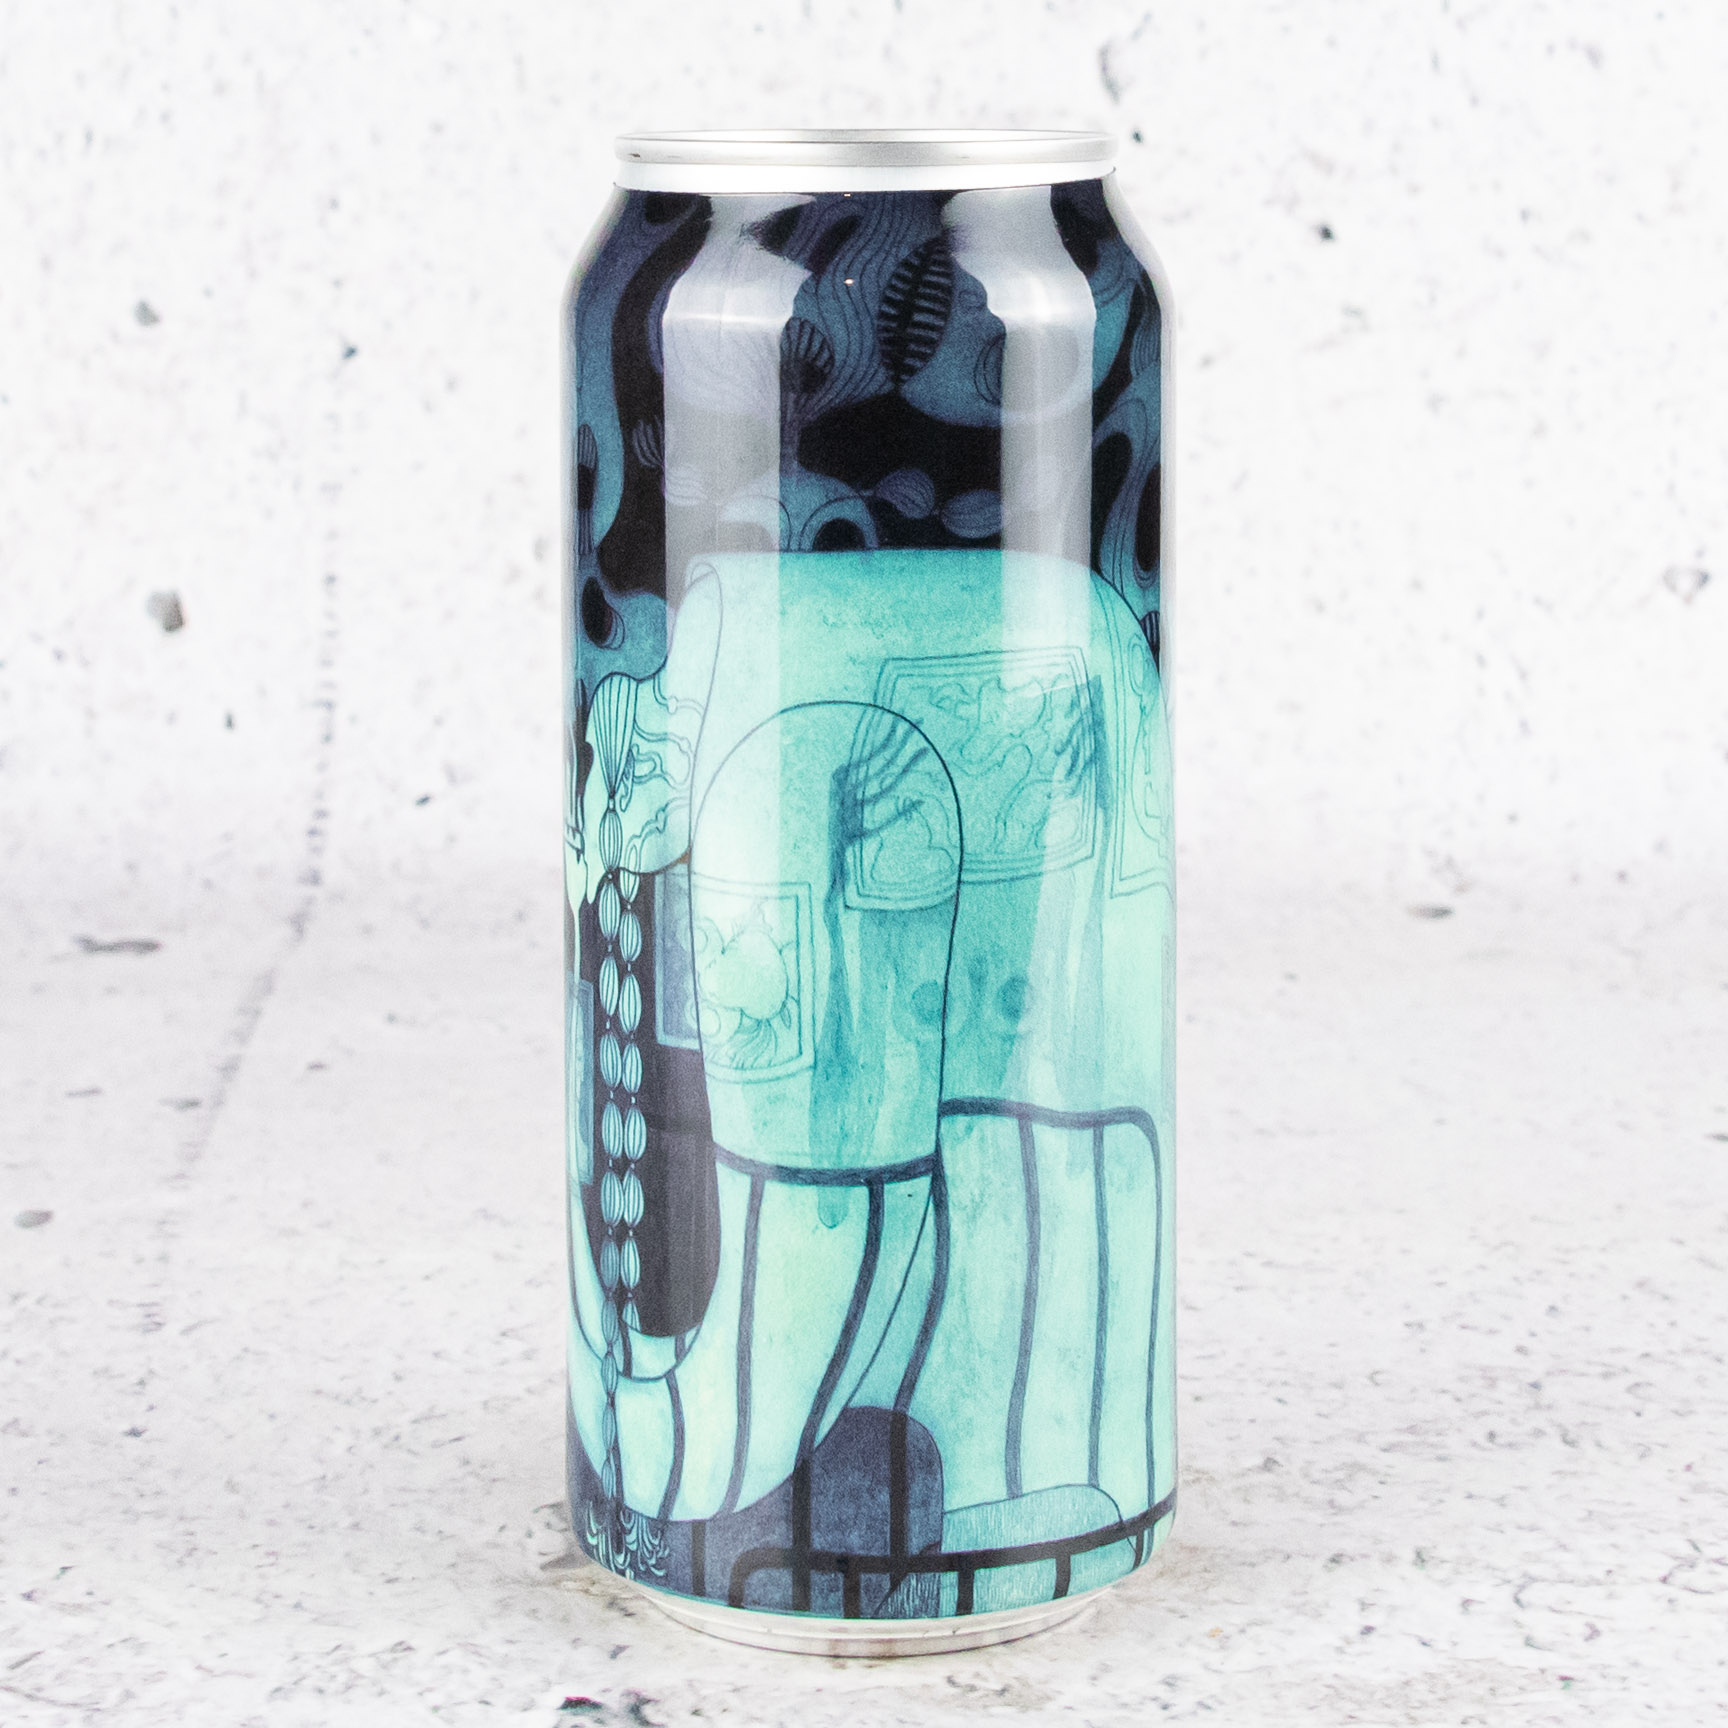 Collective Arts Life In The Clouds DDH IPA